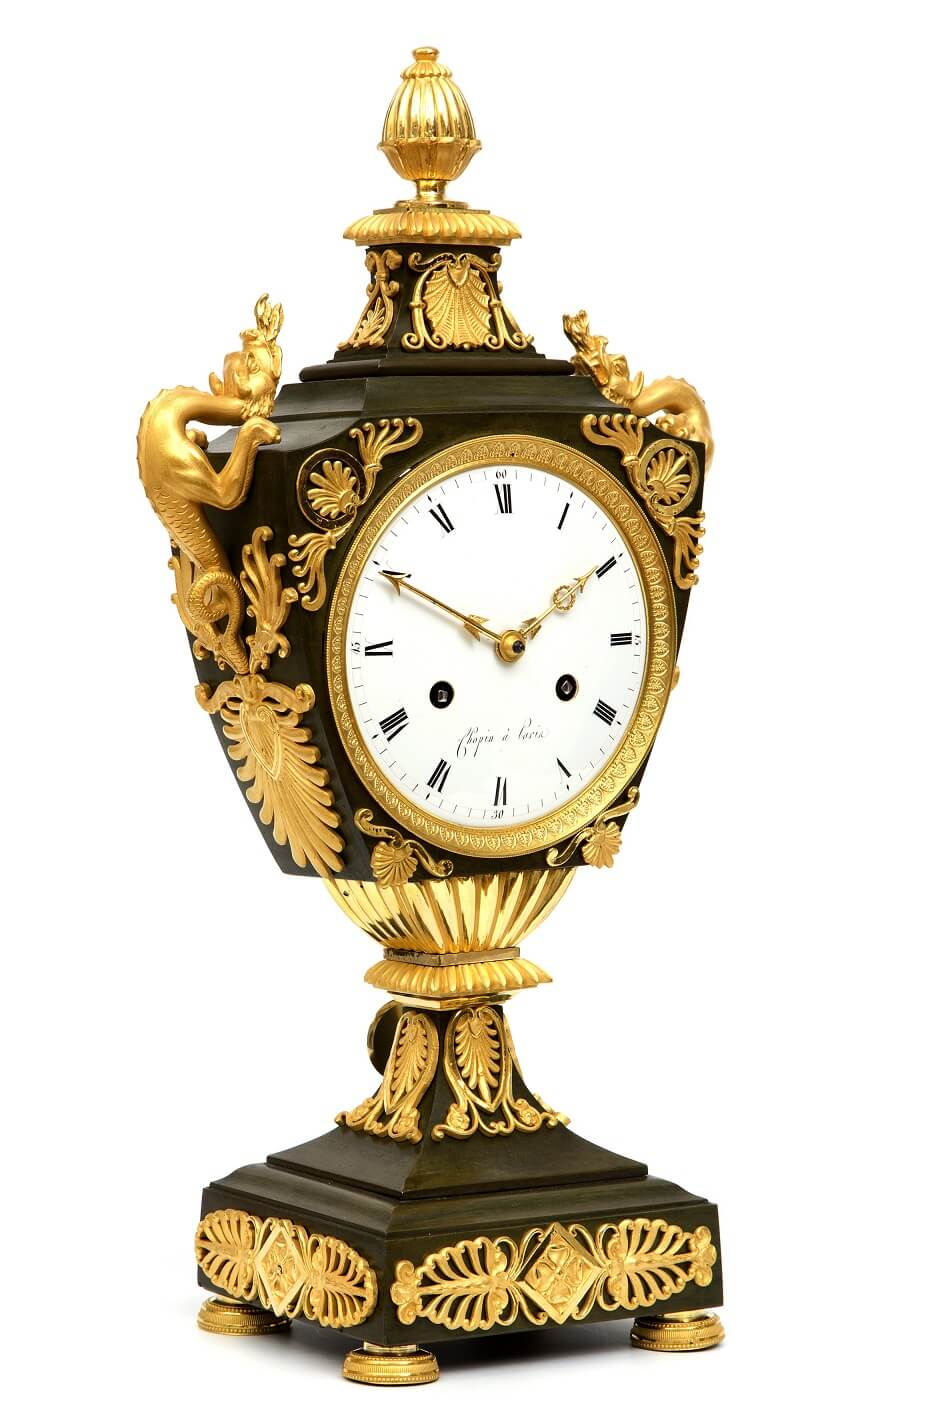 French Empire Ormolu Bronze Urn Clock Dragons 1800